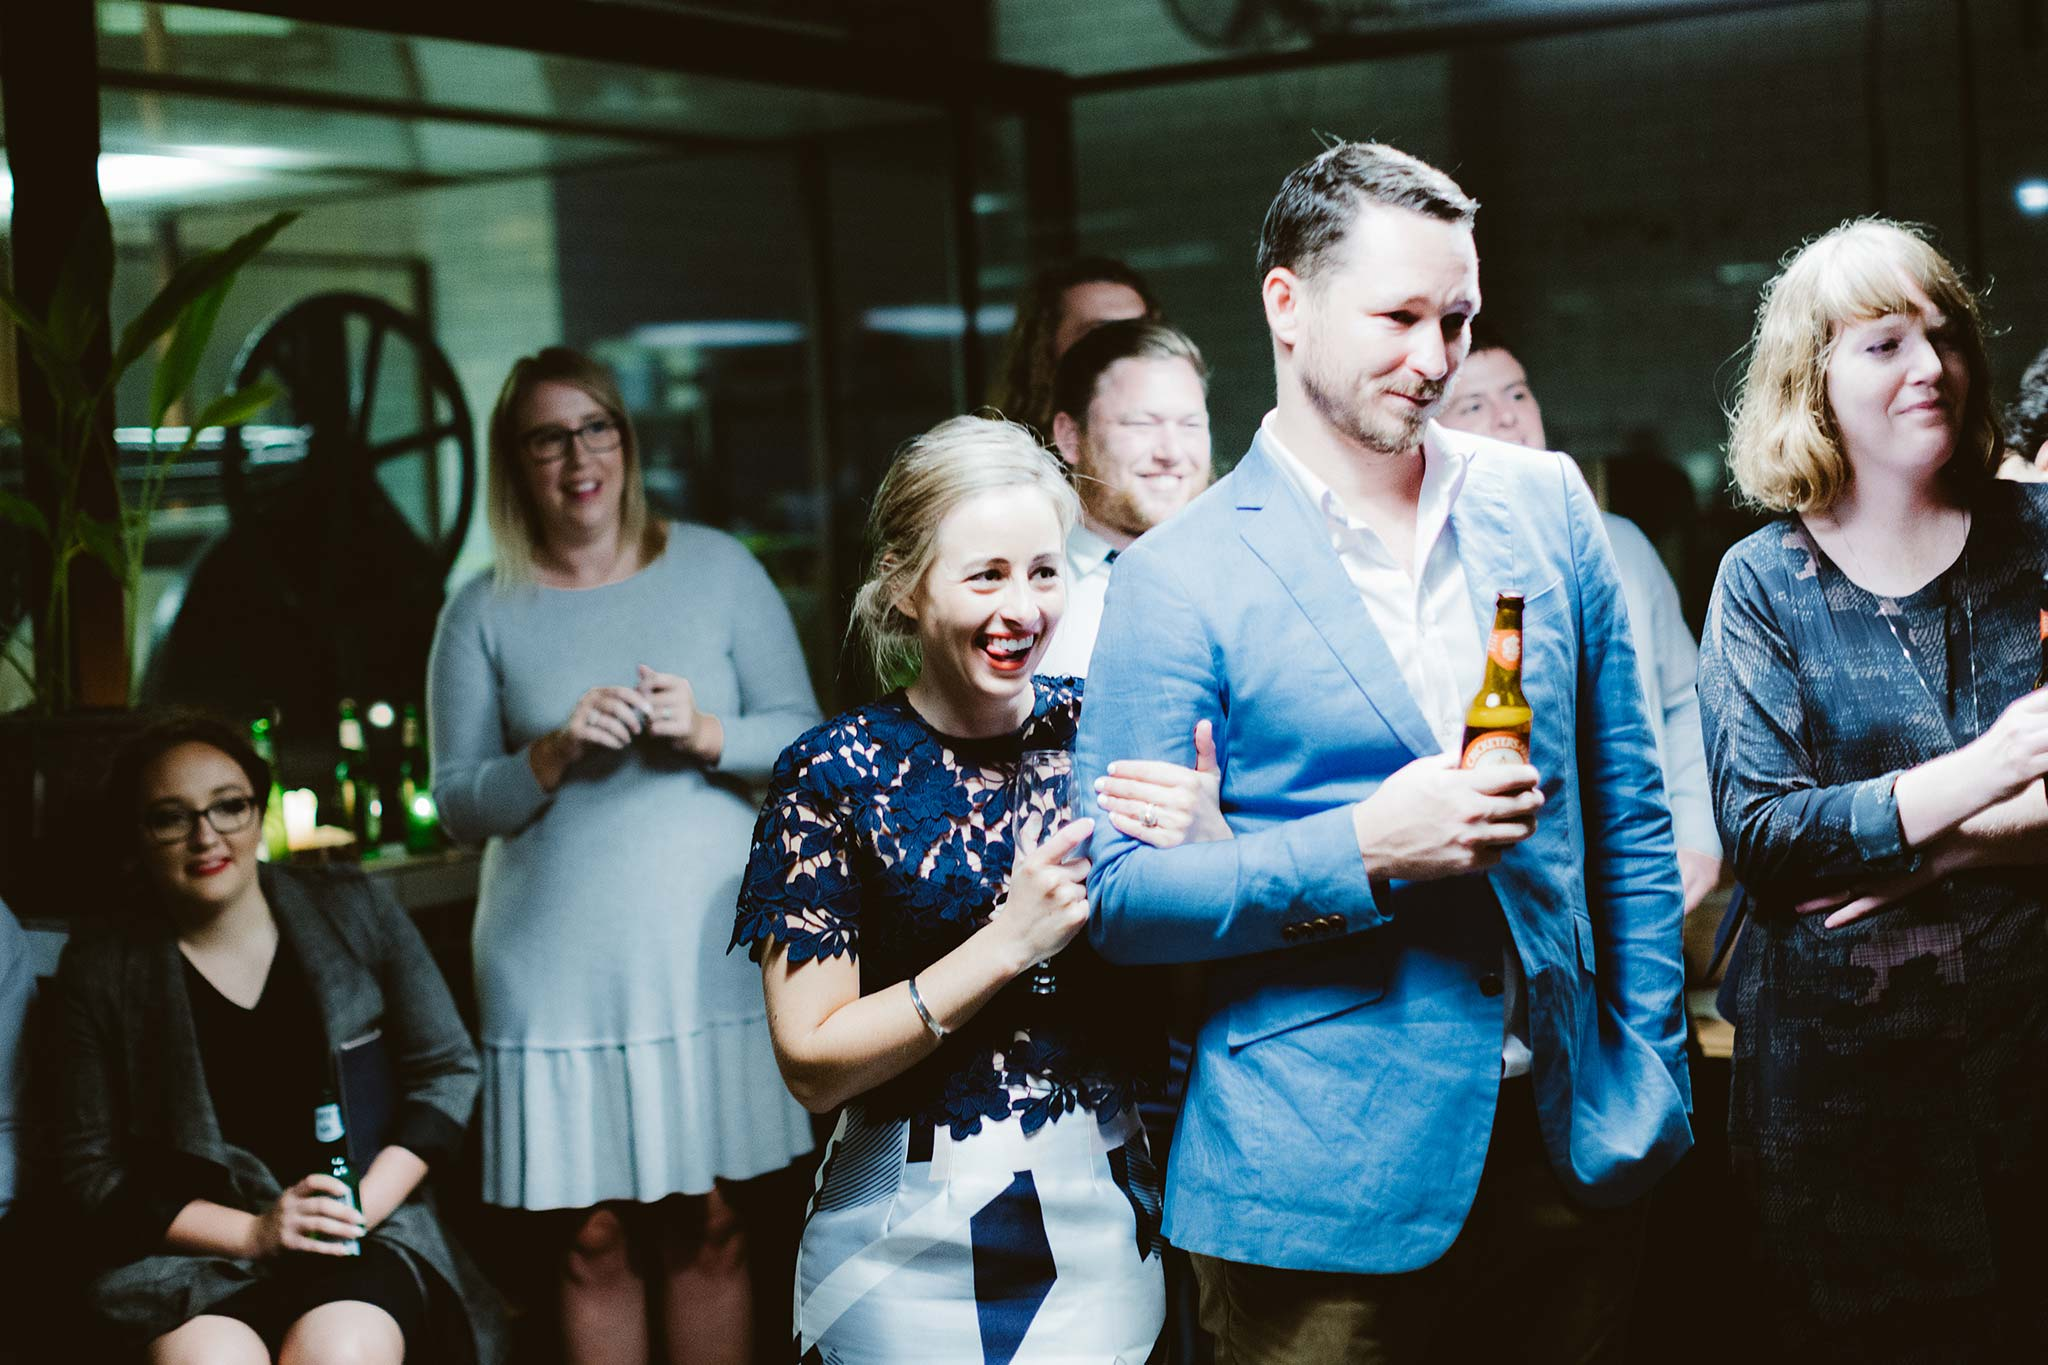 Melbourne-North-Carlton-East-Elevation-Surprise-Winter-warehouse-Wedding-photographer-guests-reaction